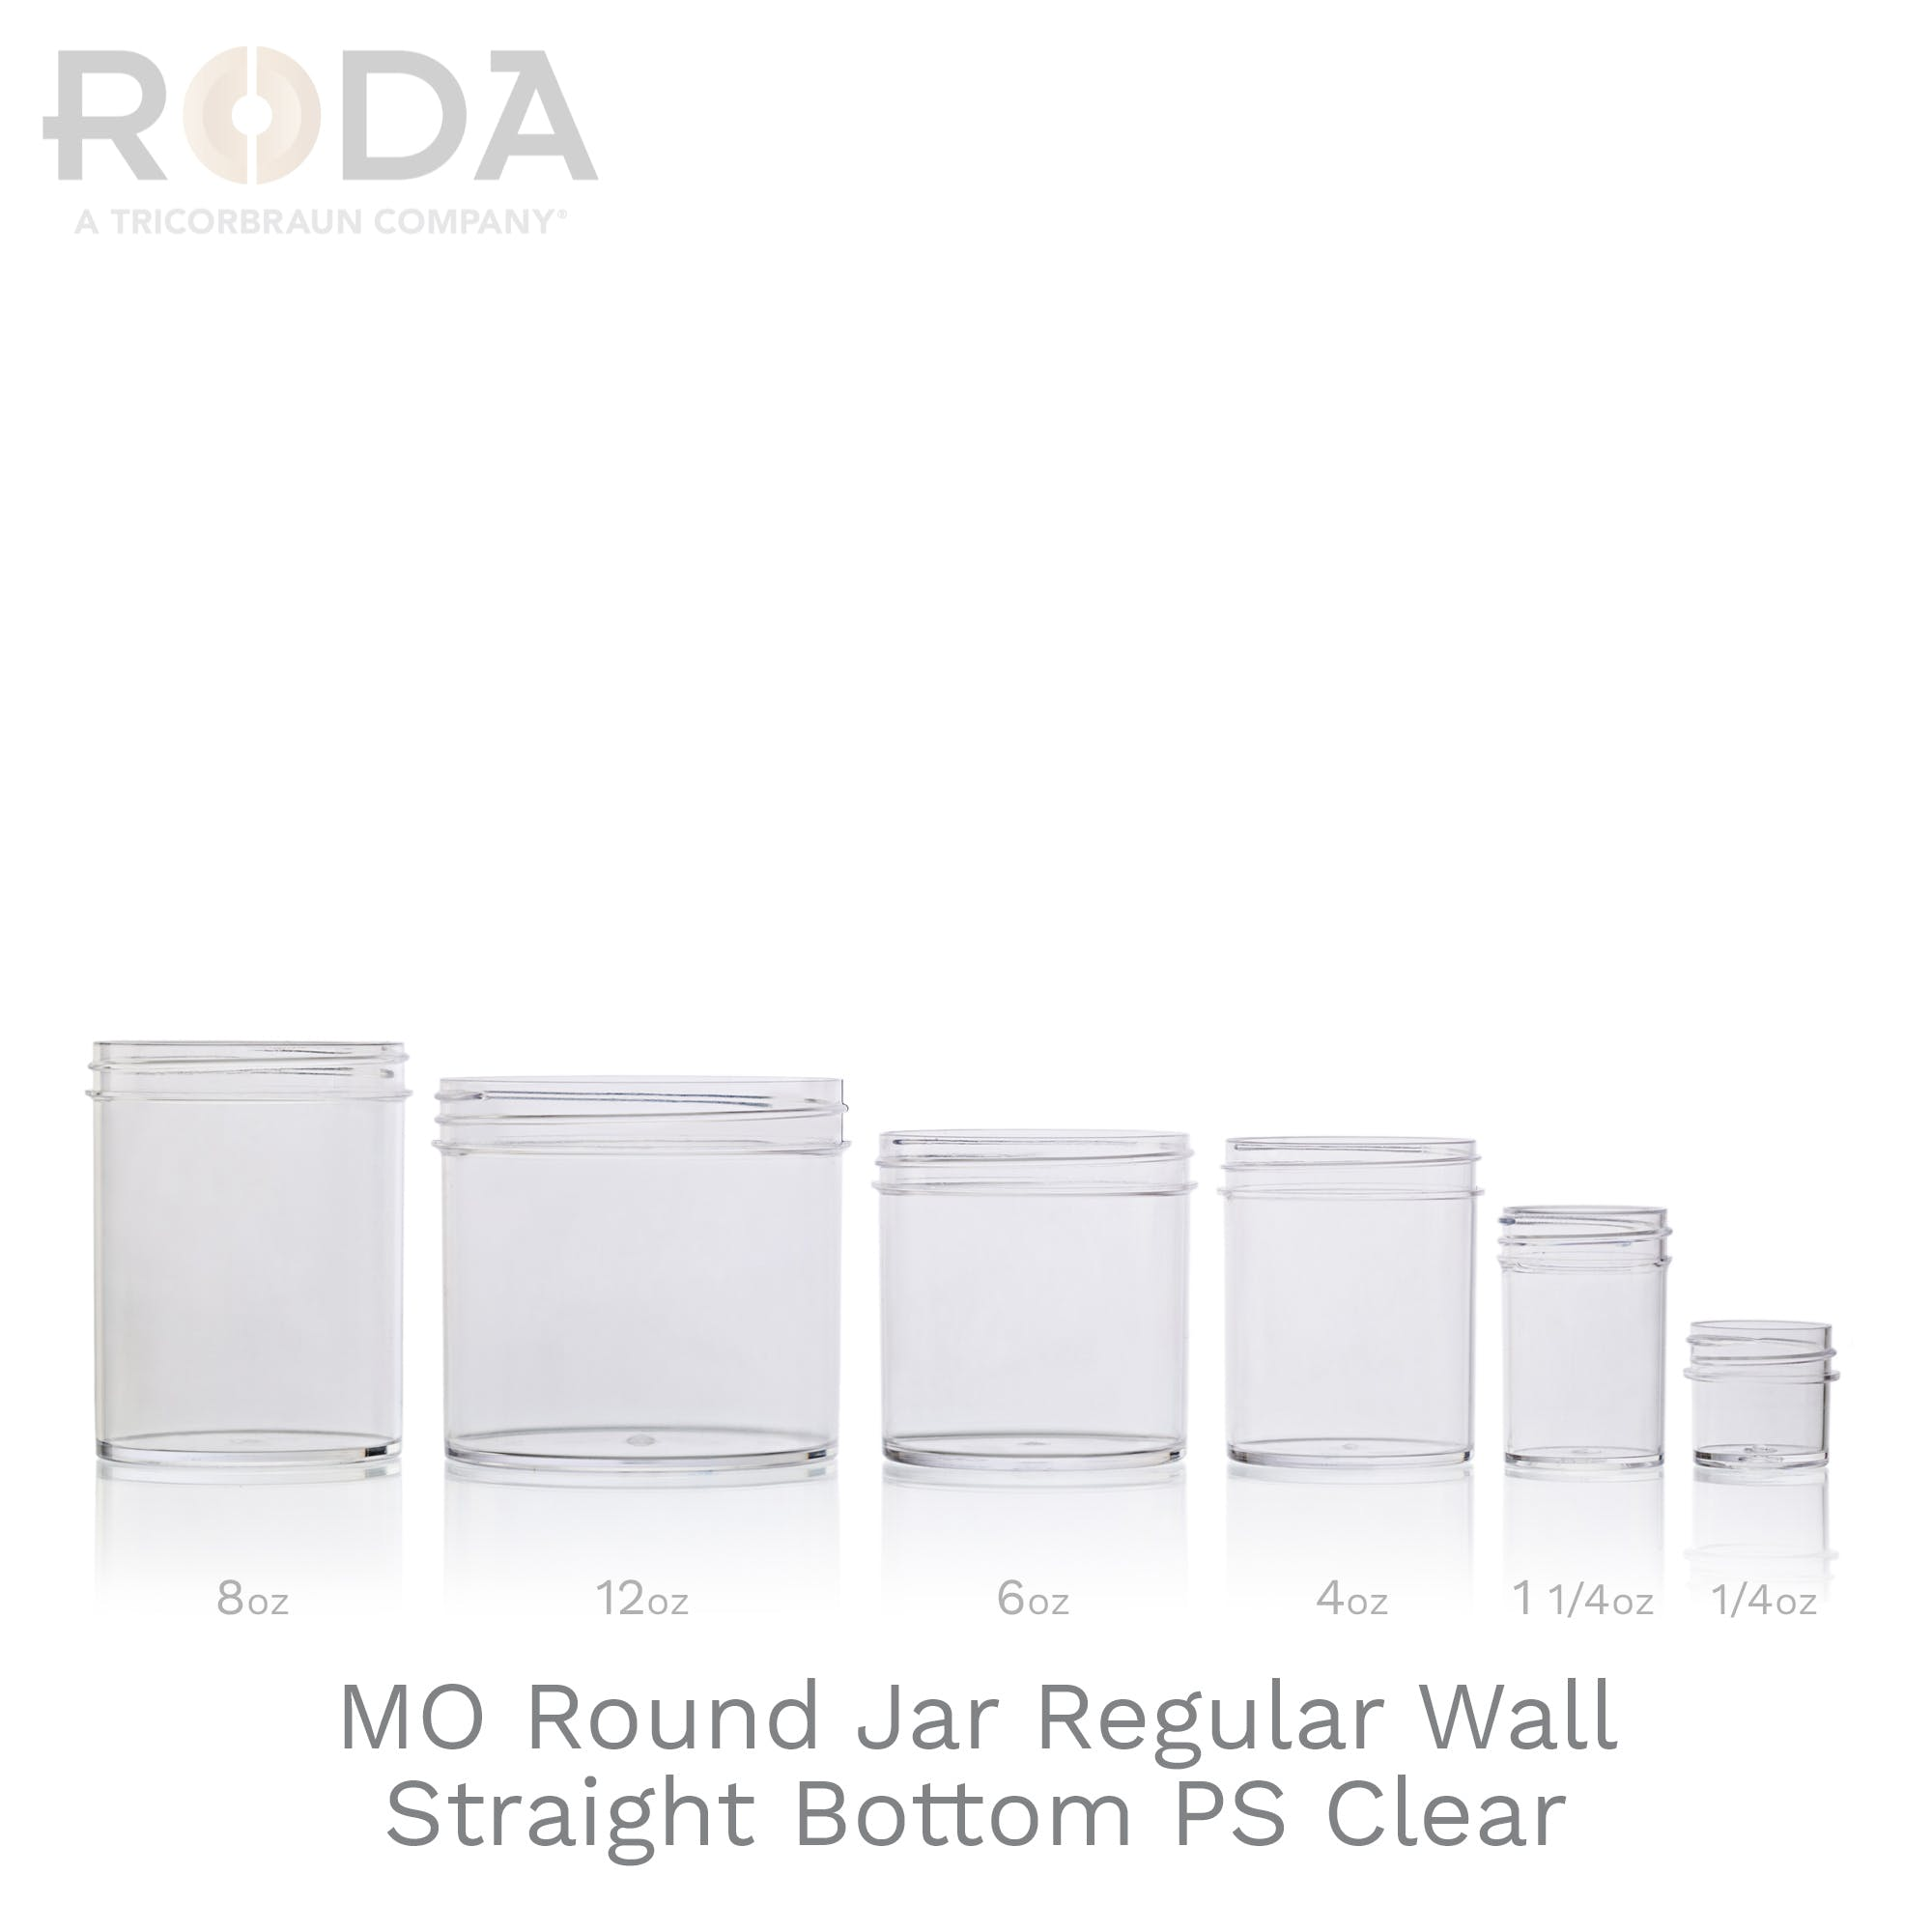 MO Round Jar Regular Wall Straight Bottom PS Clear